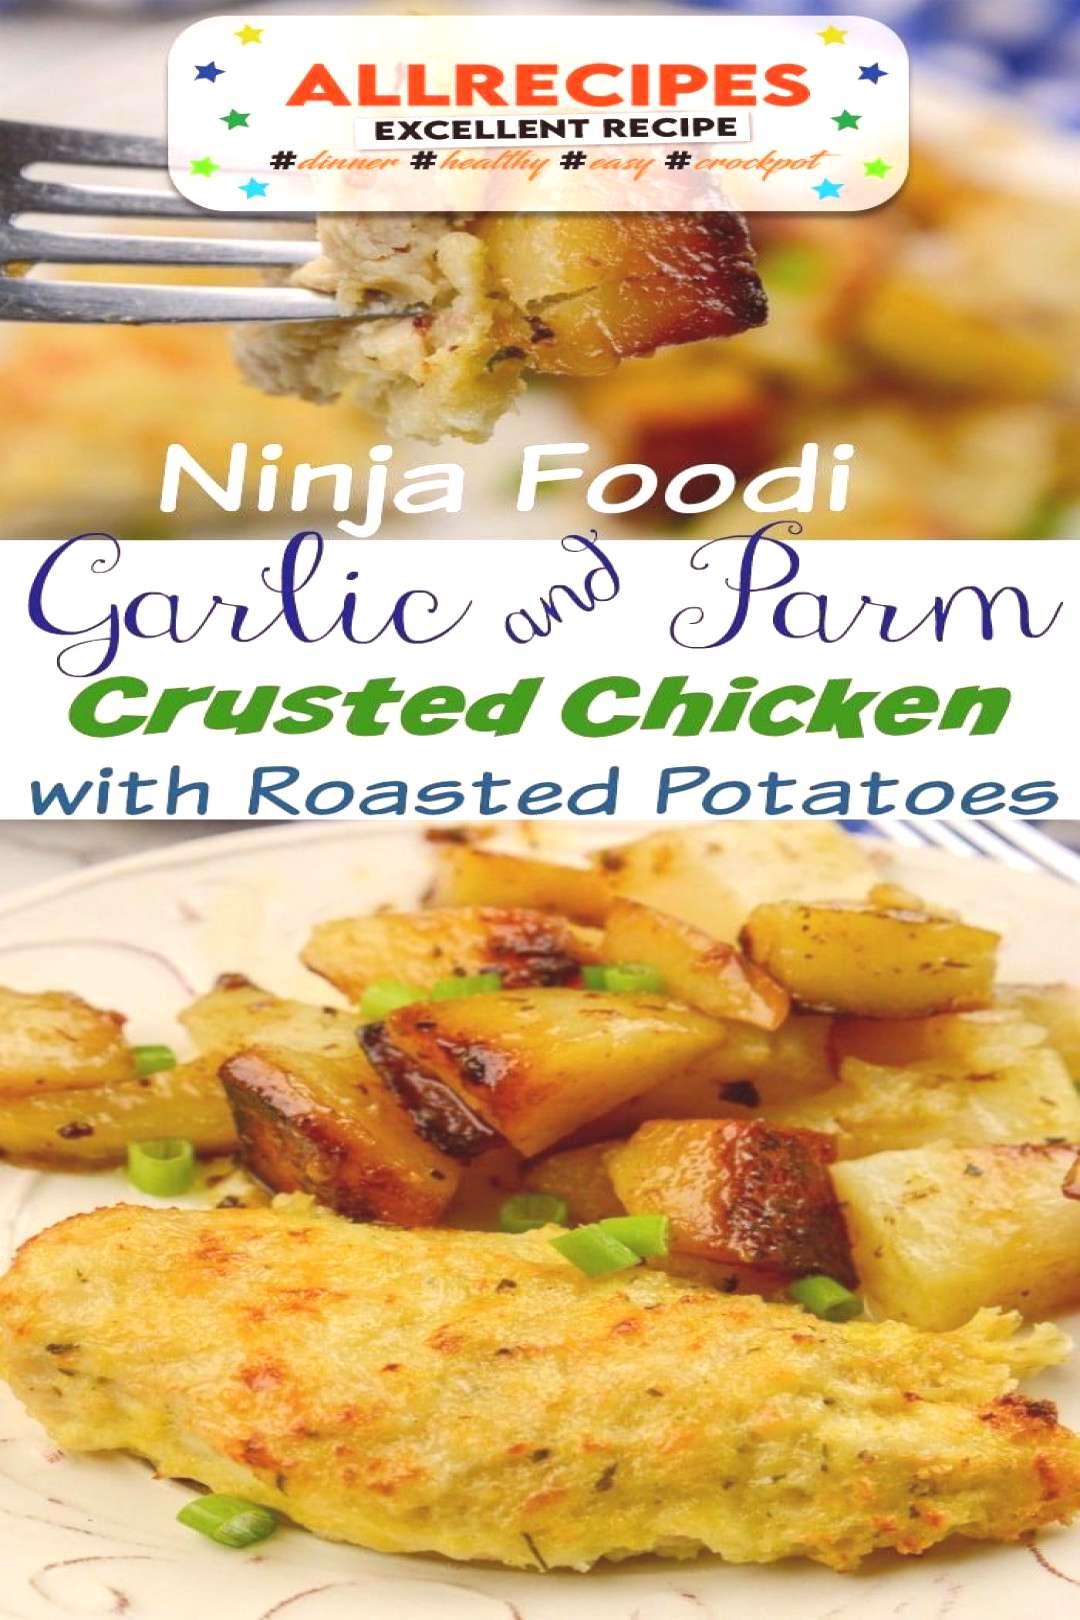 Ninja Foodi Garlic and Parm Crusted Chicken with Roasted Potatoes - - Ninja Foodi Garlic and Parm C